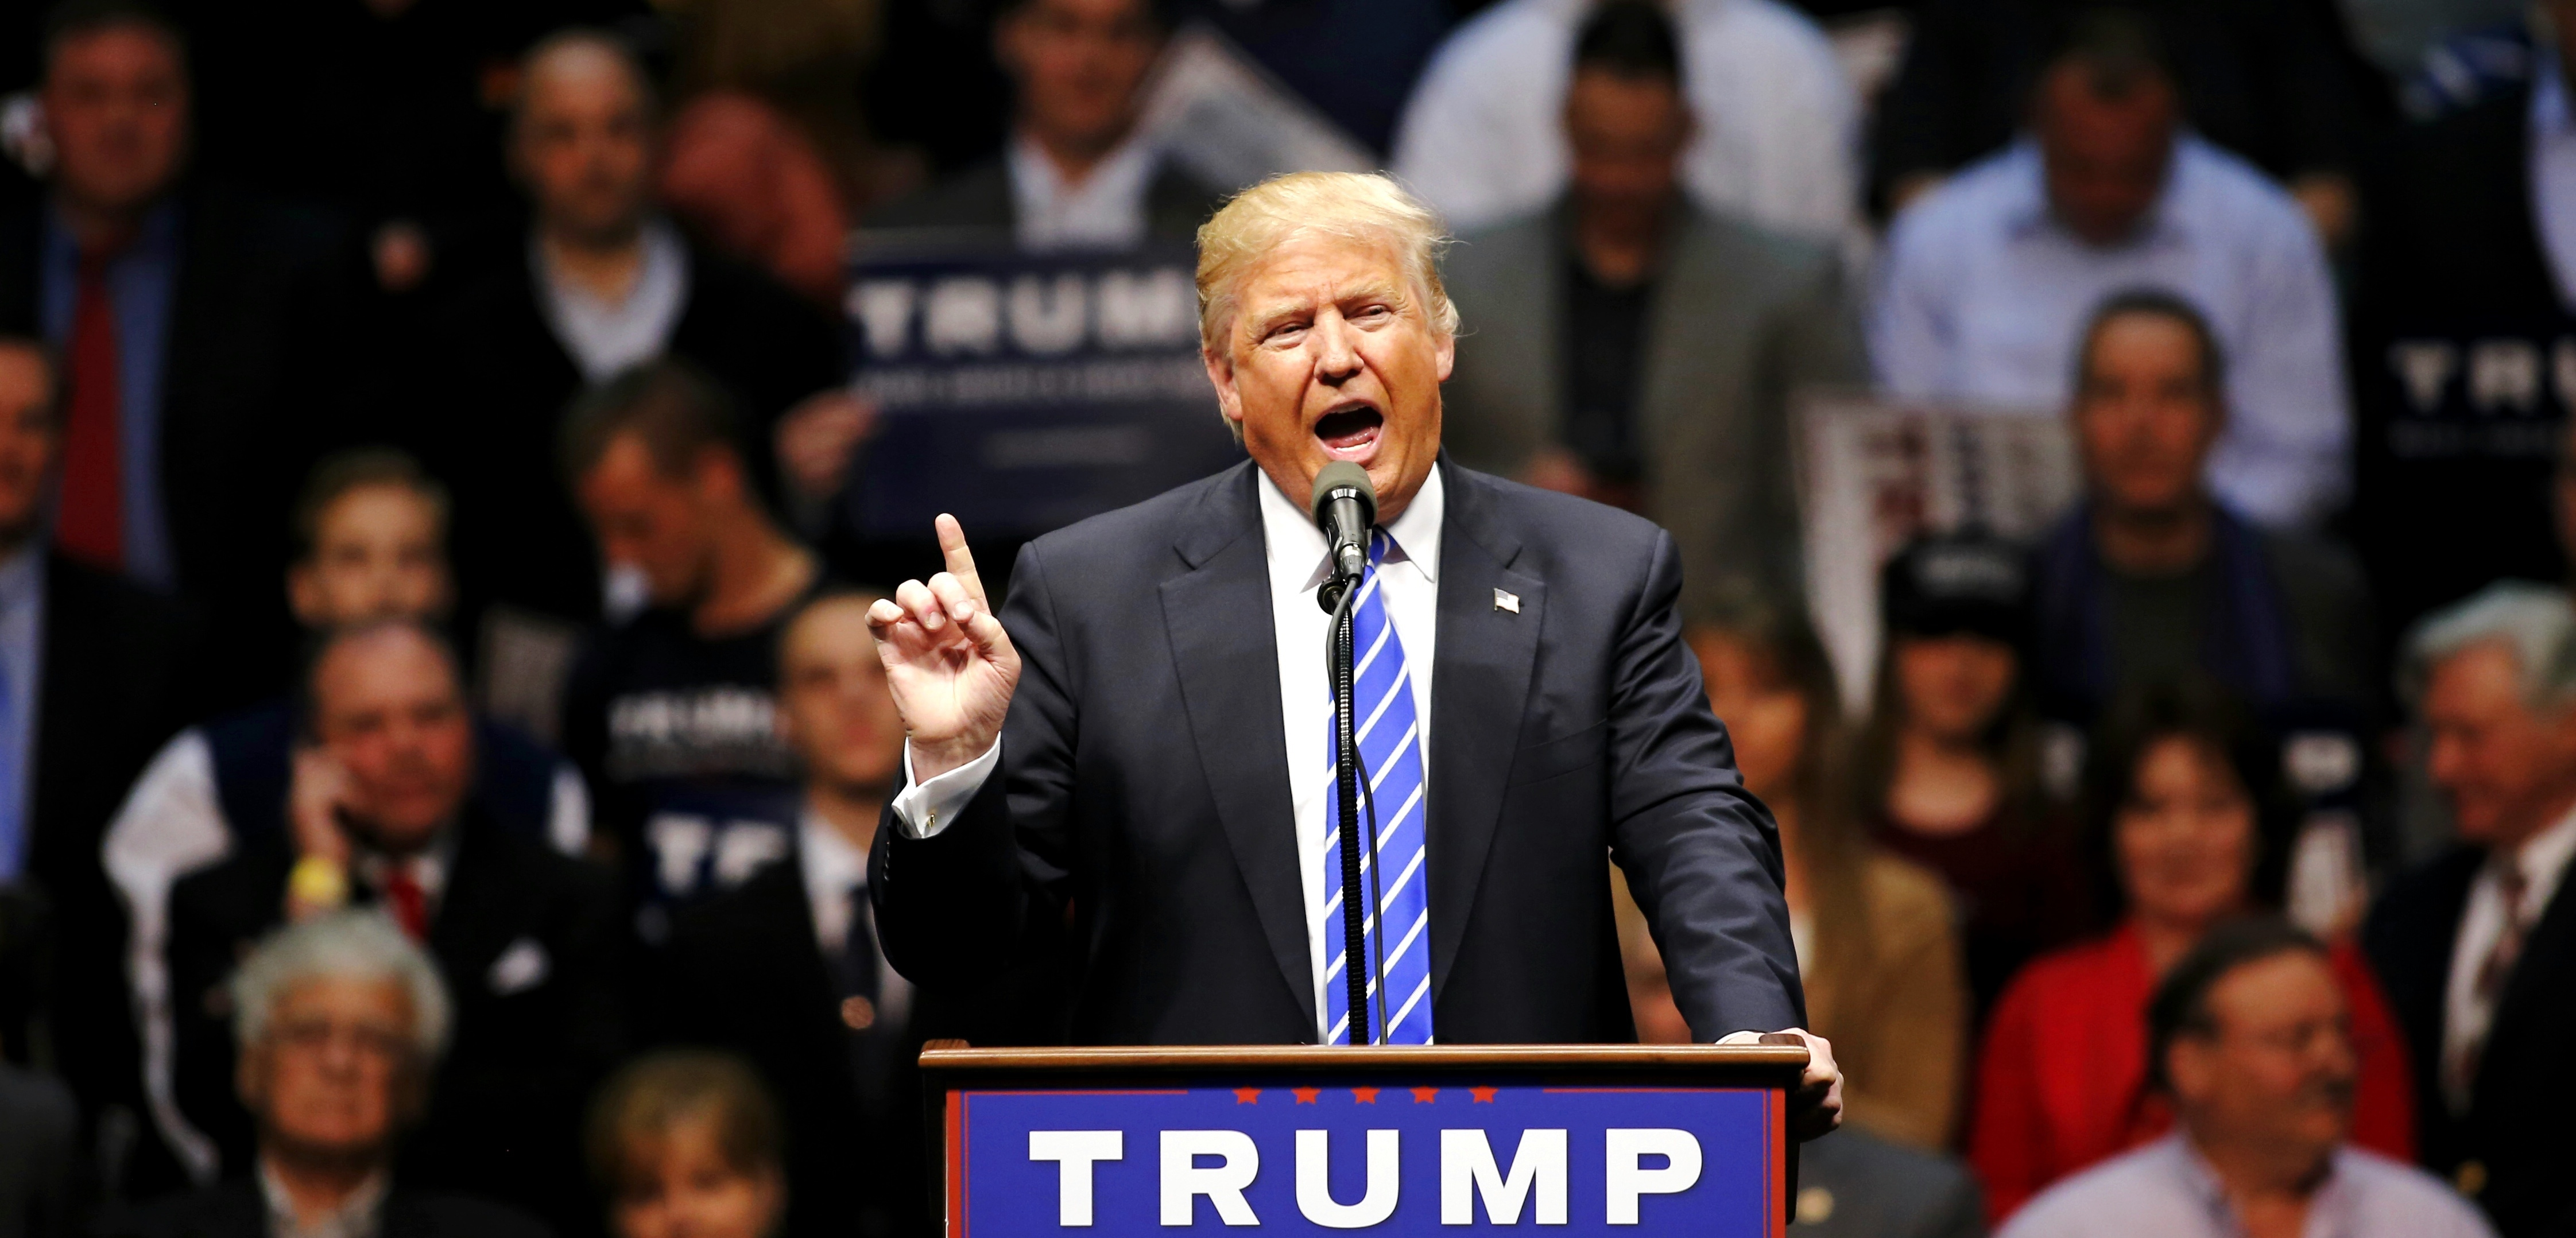 Donald Trump tells WBEN radio host Tom Bauerle: 'I'm bringing jobs back, Tom, I'm bringing jobs back. Nobody else is going to bring jobs back. That's what I do.' (Getty Images)